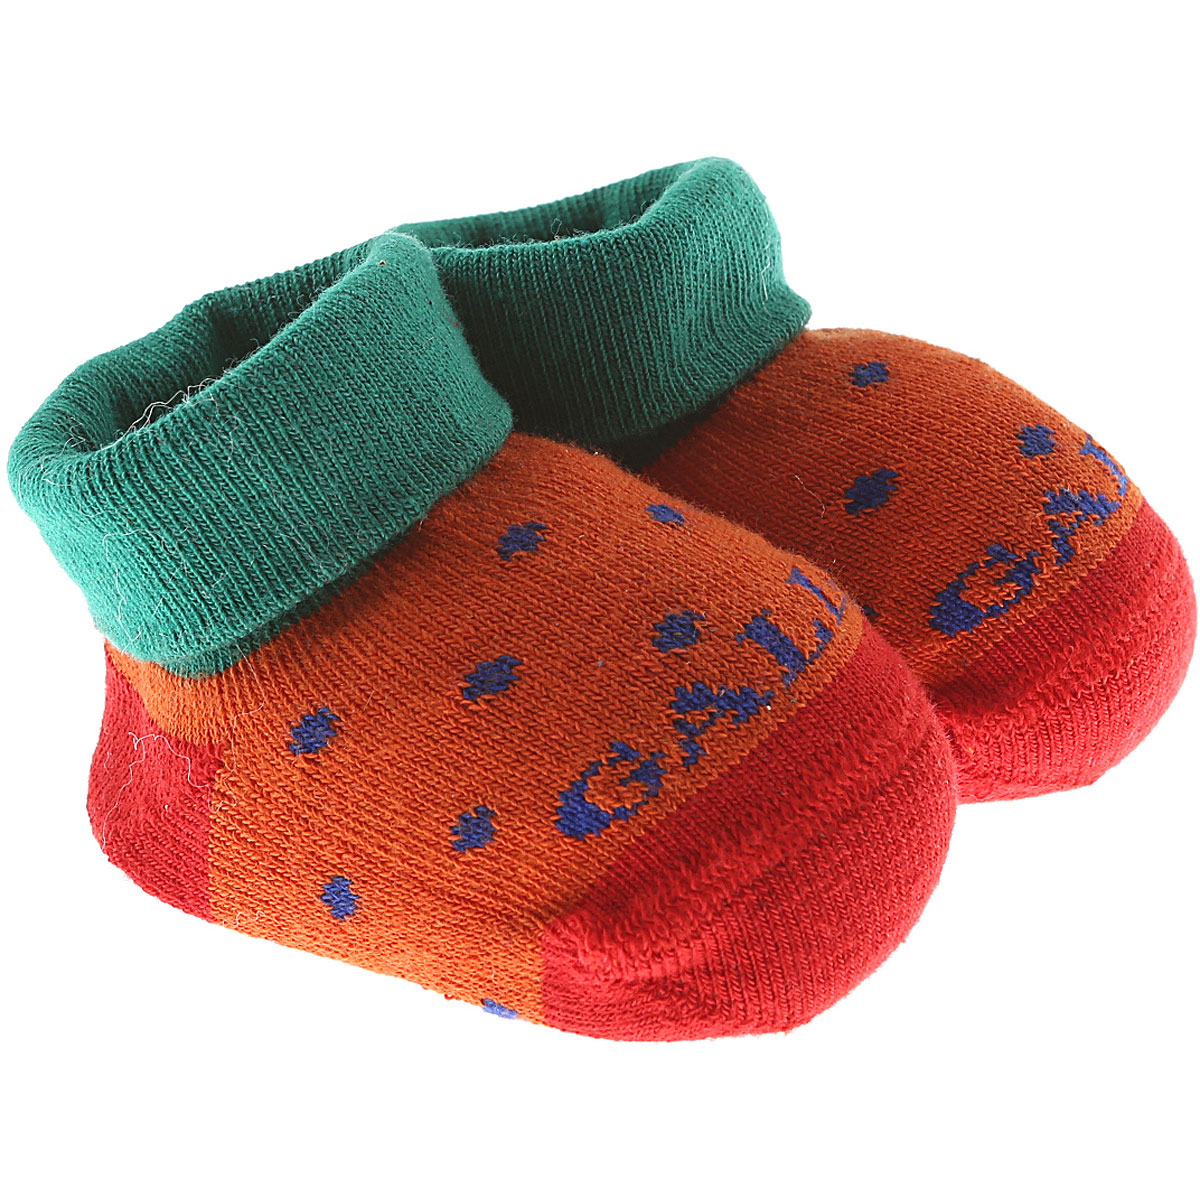 Gallo Baby Shoes for Girls On Sale in Outlet, Orange, Cotton, 2019